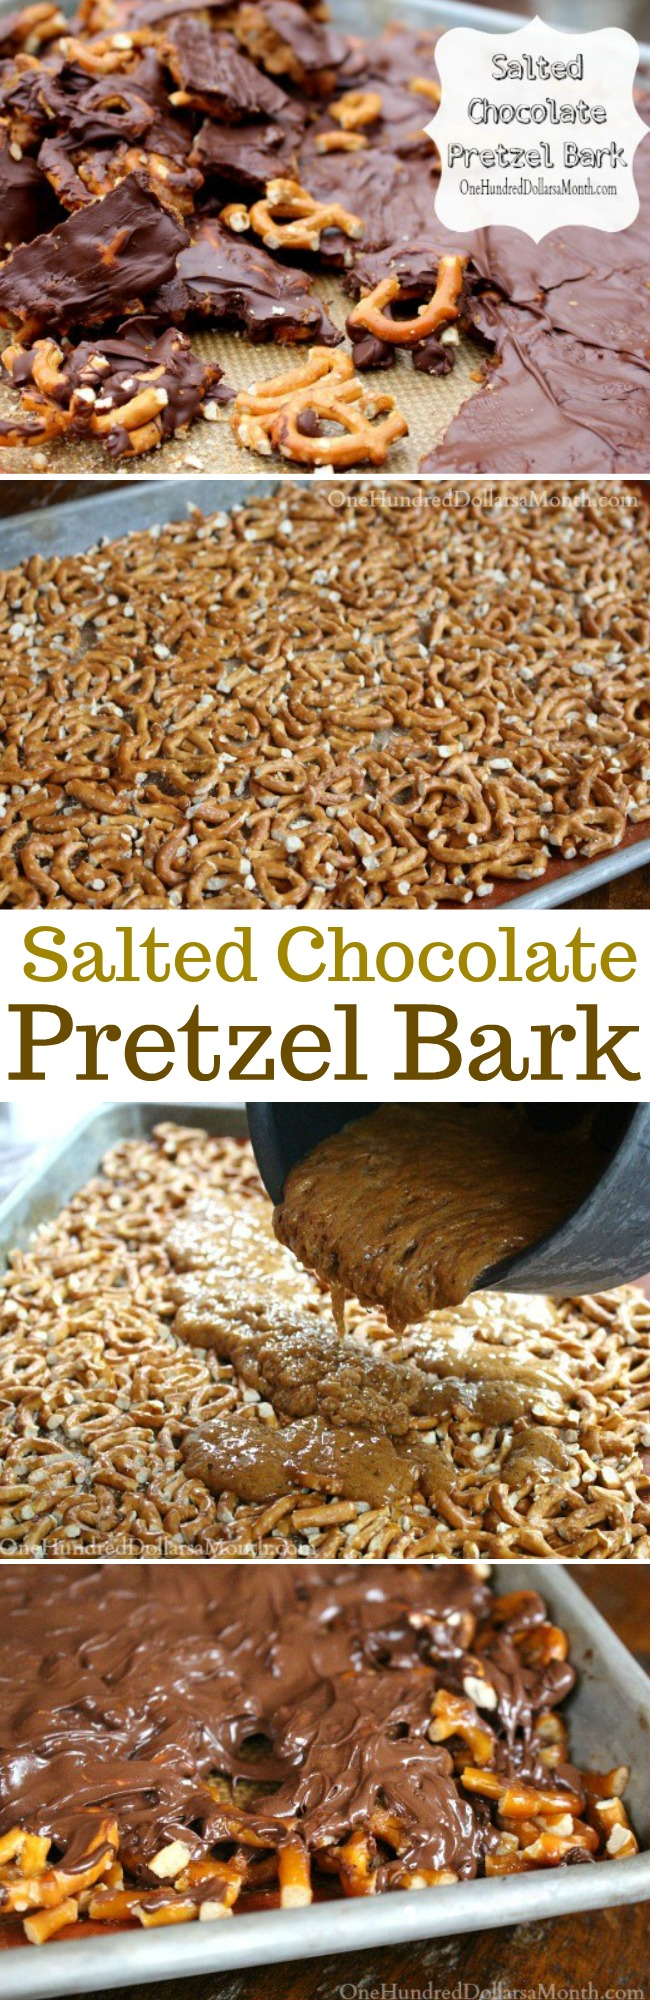 Salted Chocolate Pretzel Bark